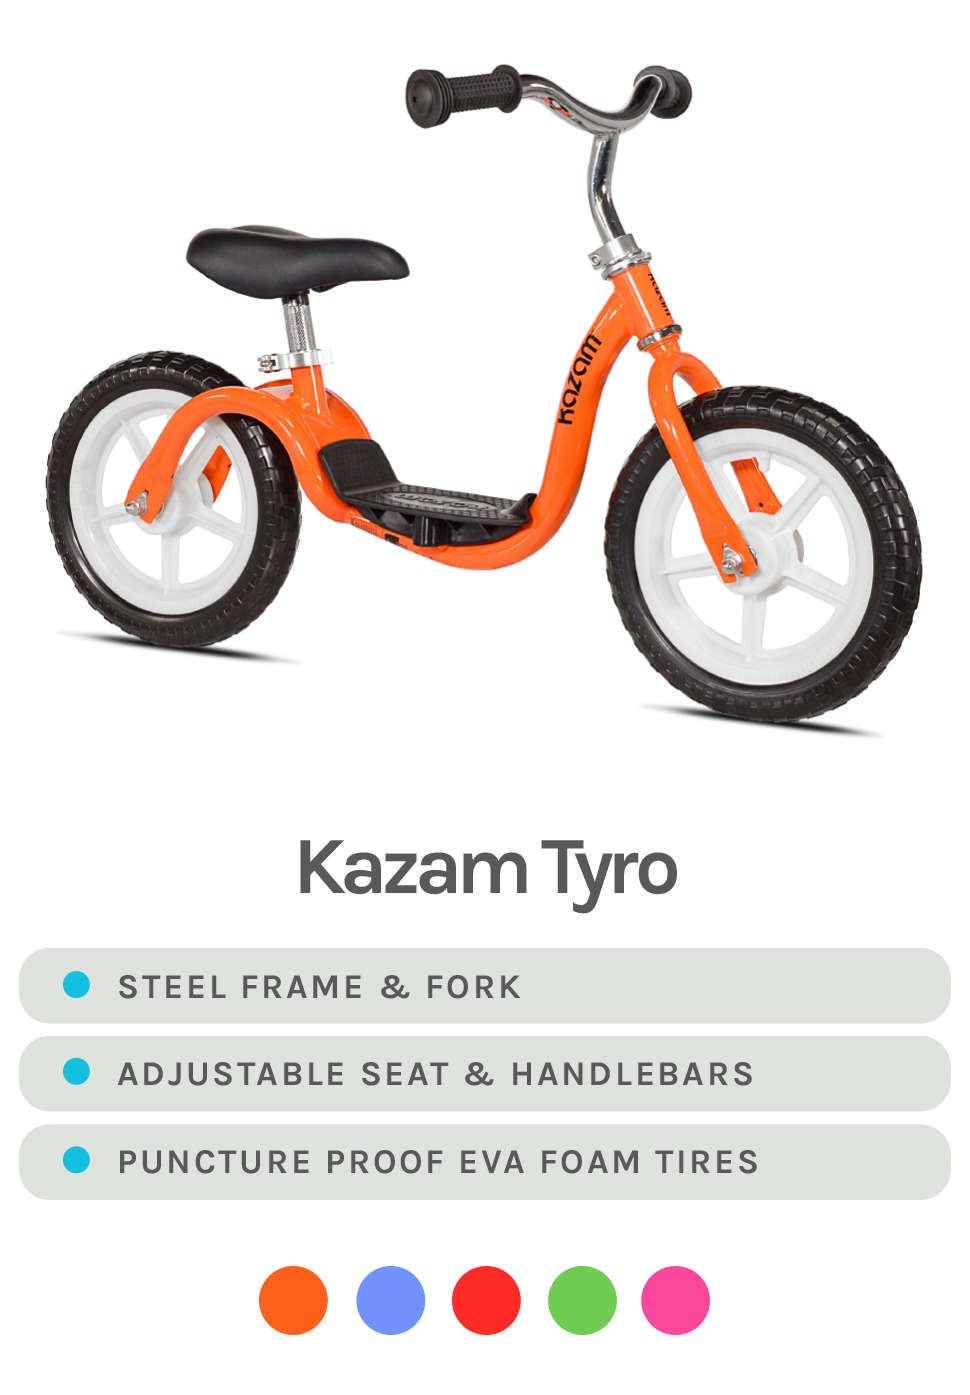 Orange Kazam Tyro Featured - Specs - Steel Frame & Fork, Adjustable Seat & Handlebars, and Puncture Proof EVA Foam Tires